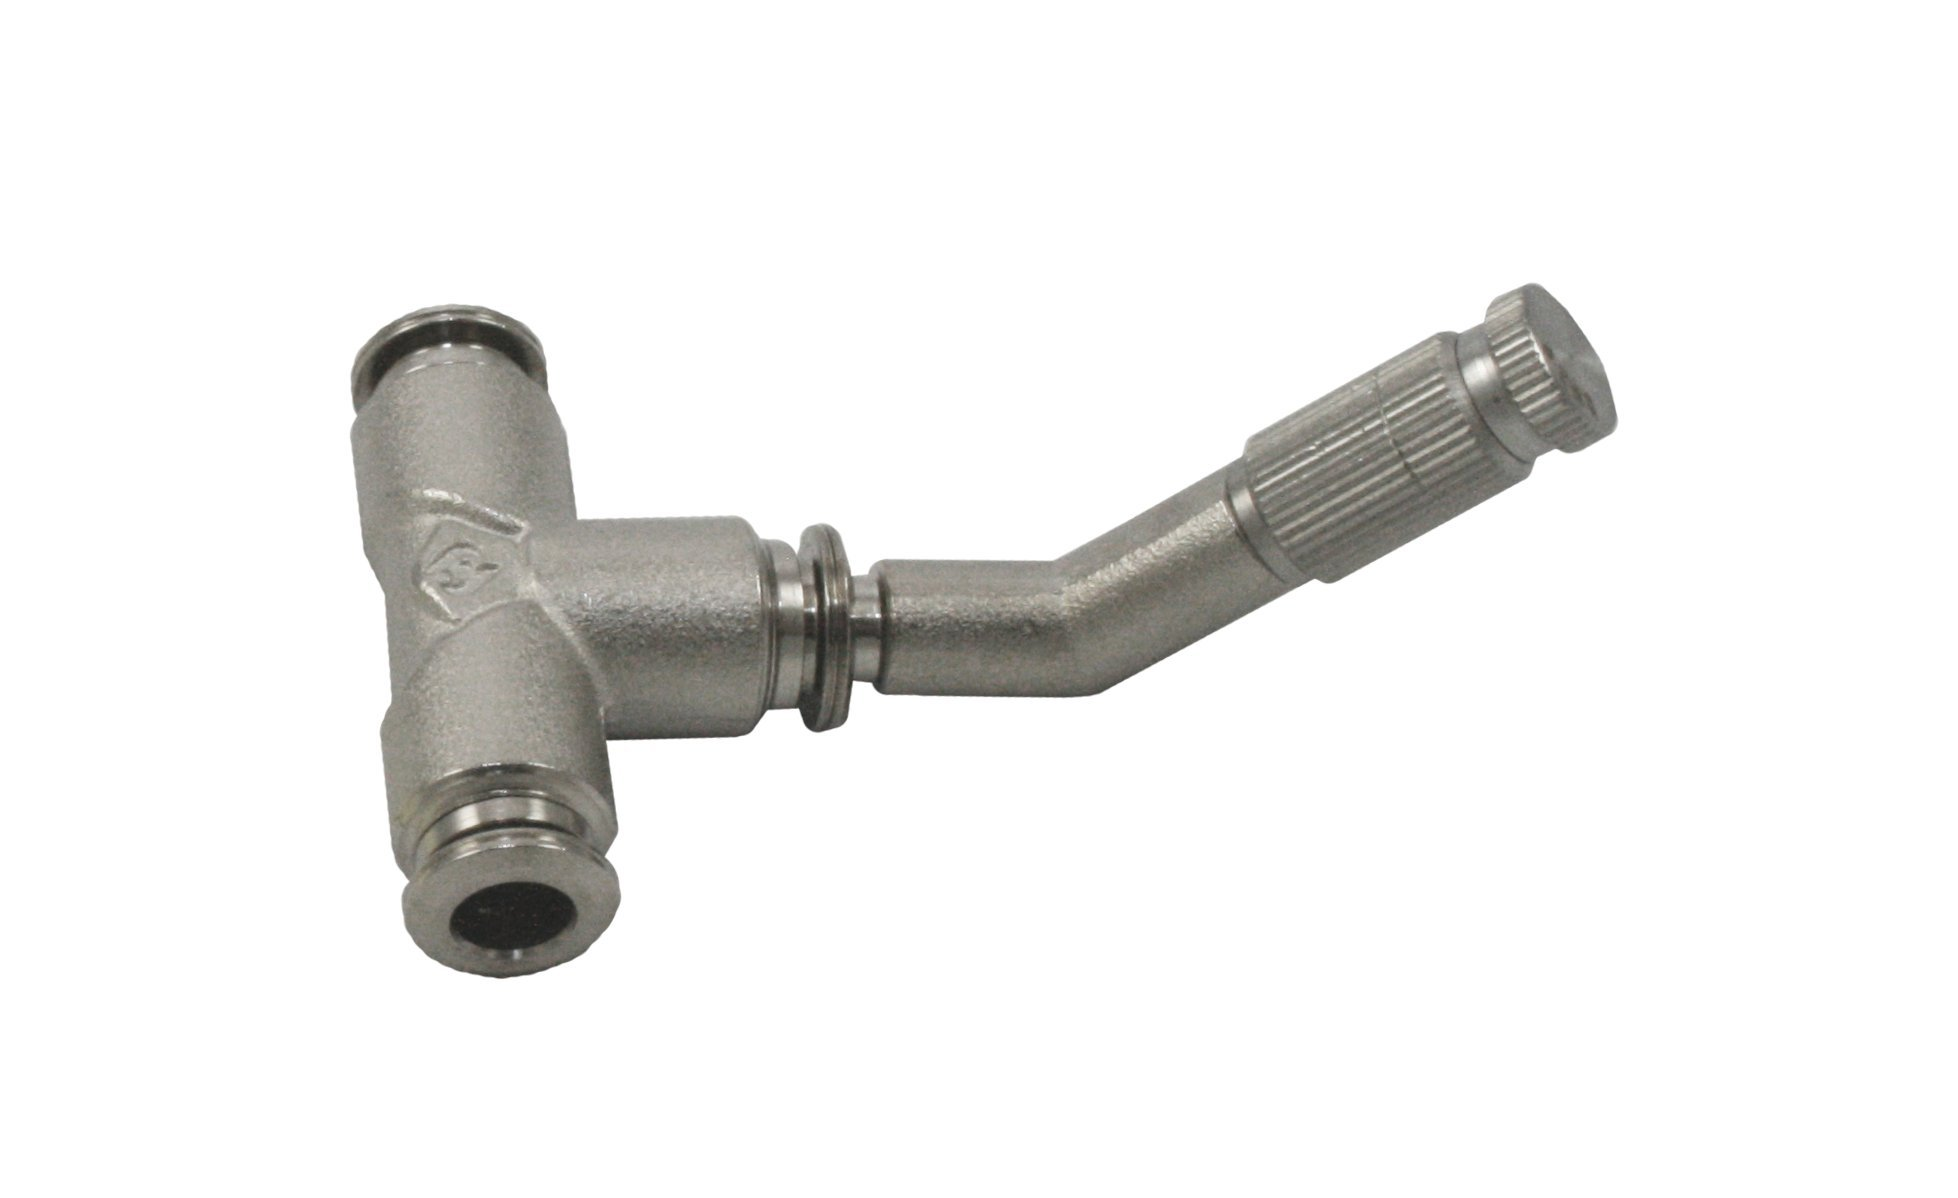 5 Pack 45 Degree Misting Nozzle for Mosquito or Spider Systems by Mosquito and Cooling Systems, Inc.